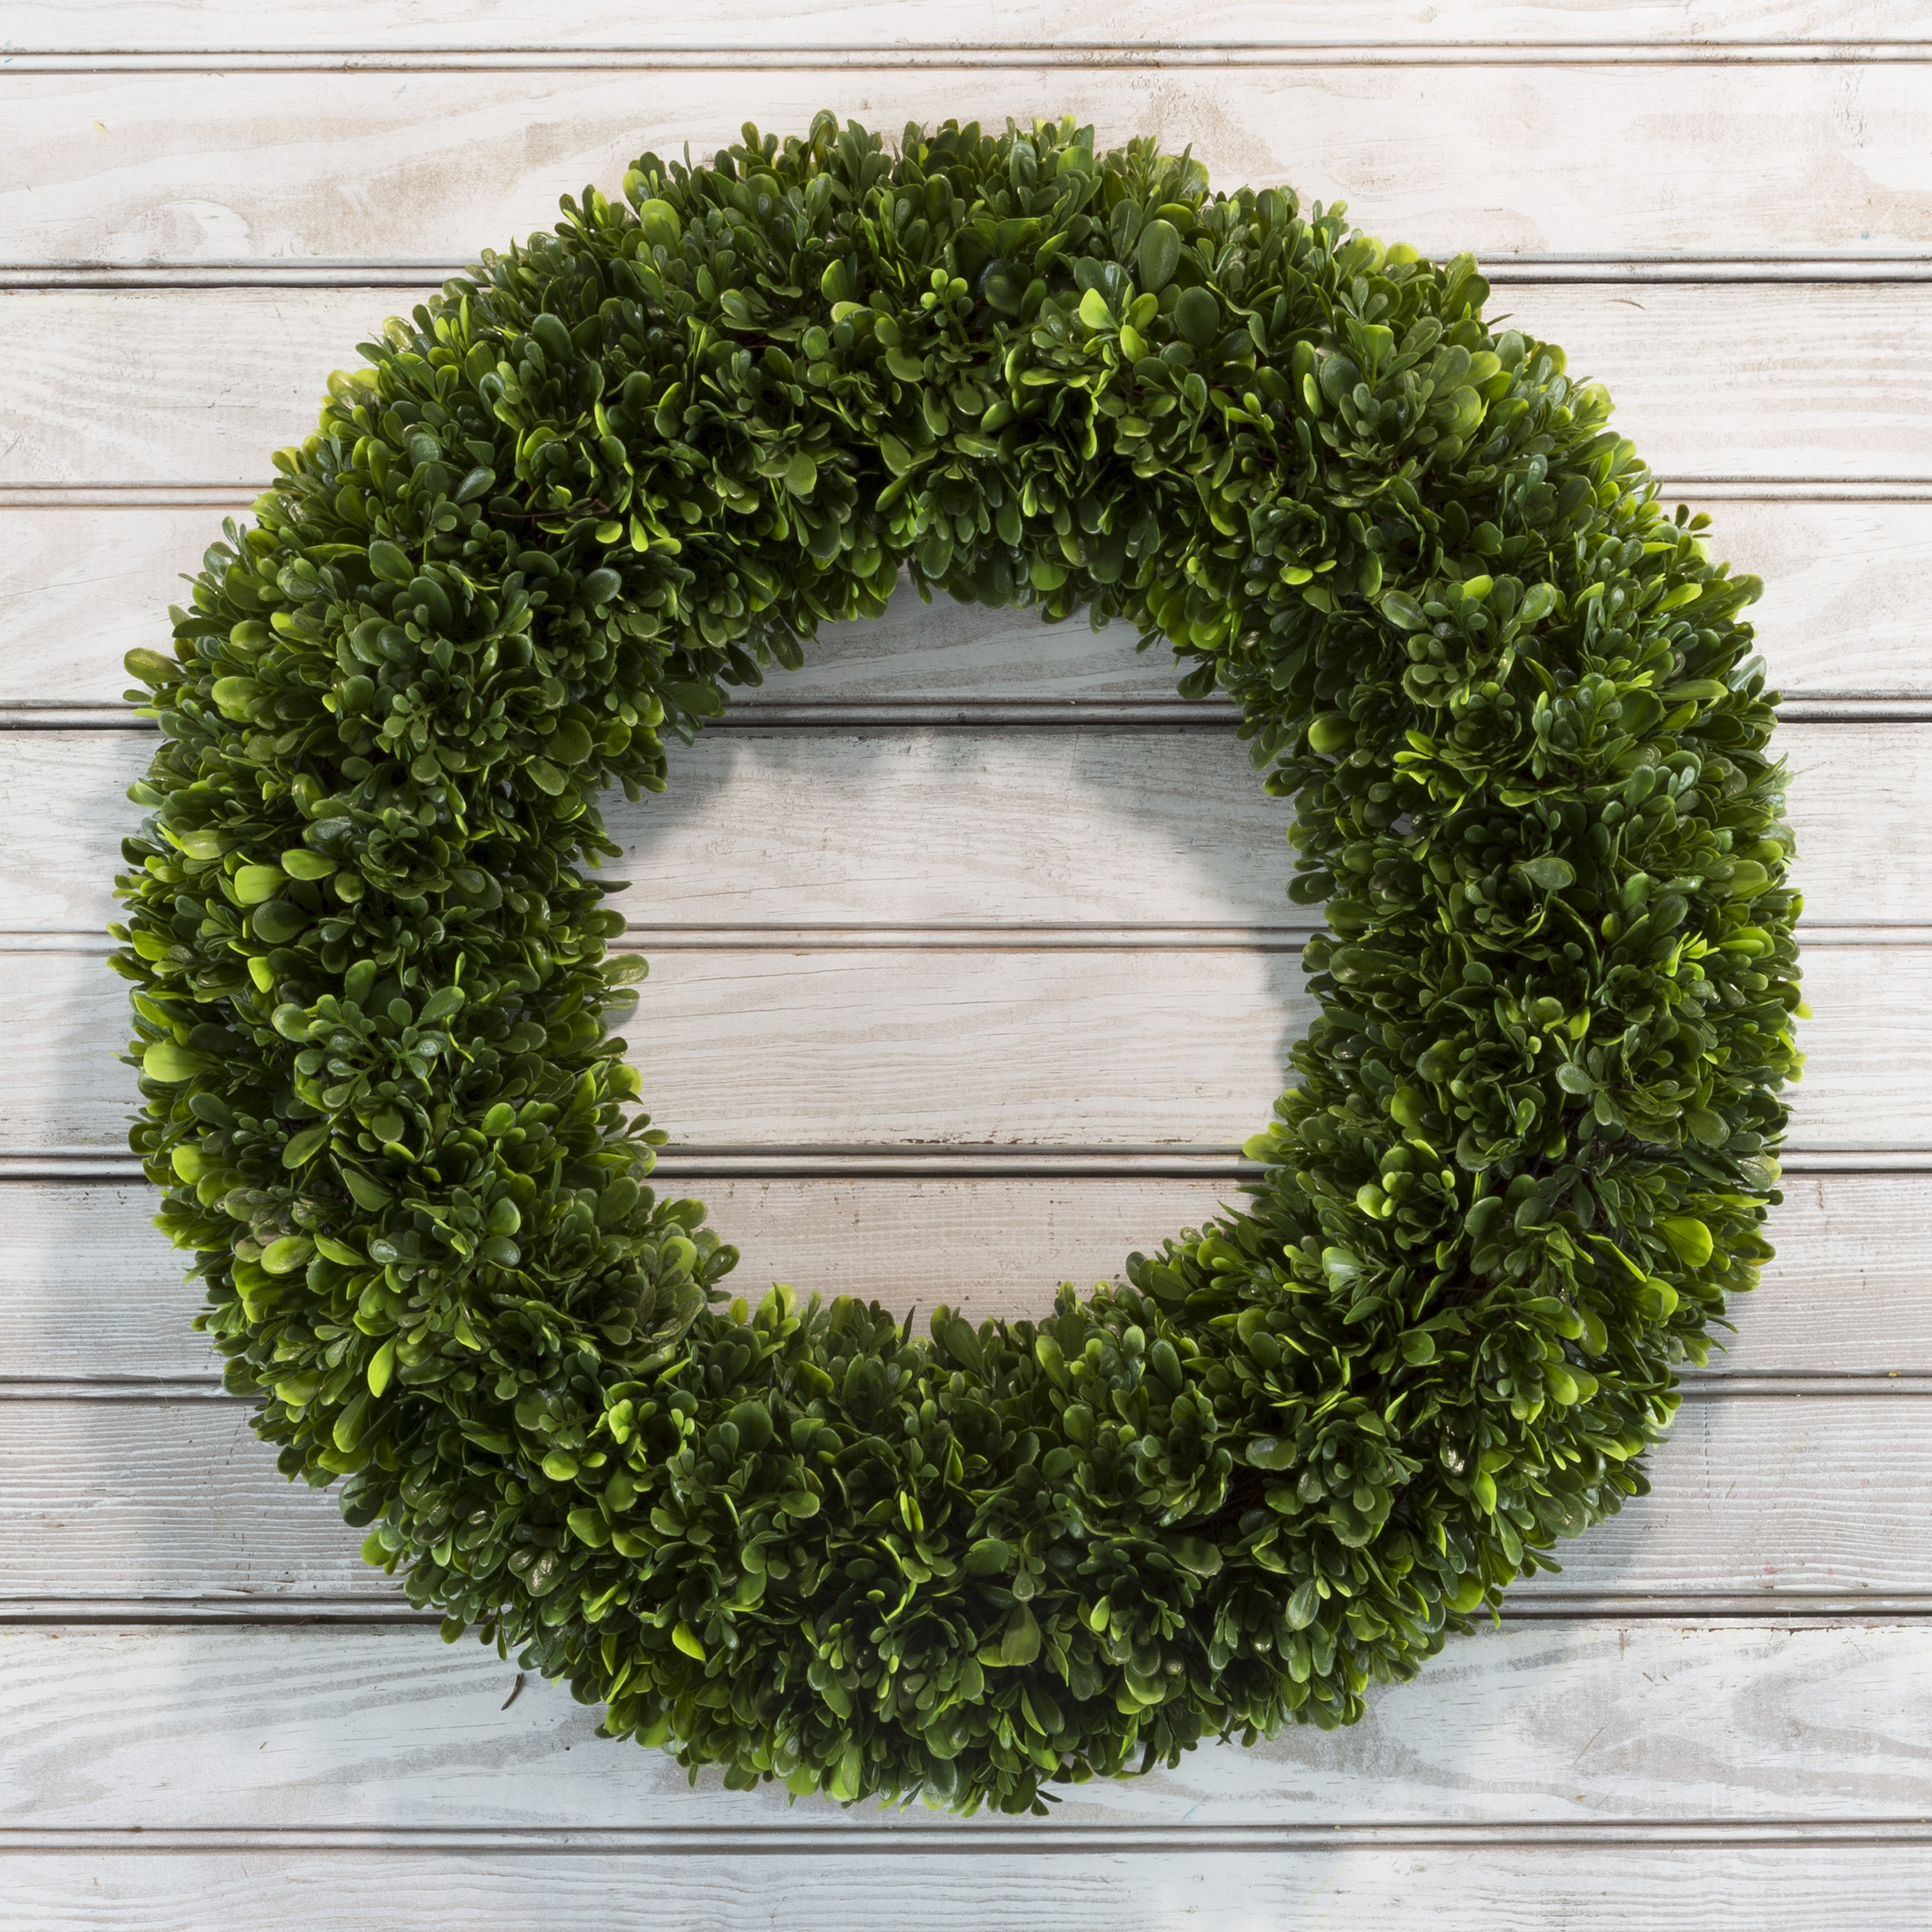 Artificial Tea Leaf Wreath with Grapevine Base- UV Resistant Greenery Half Wreath with Slim Profile for Front Door, Wall Decor by Pure Garden 19.5""